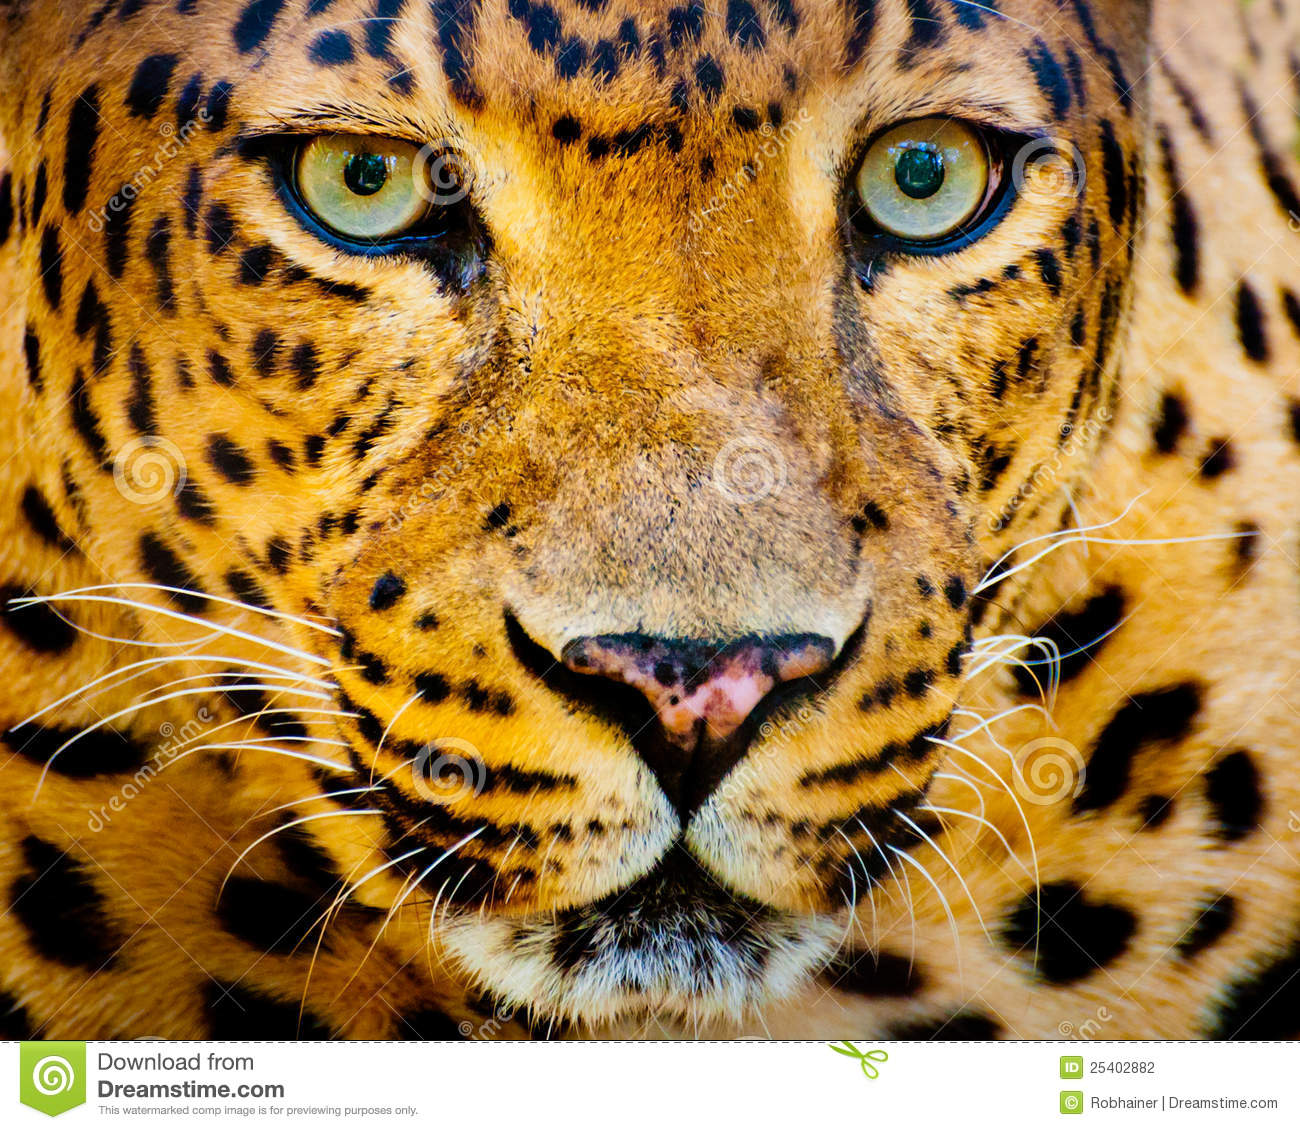 leopard eye close up - photo #27